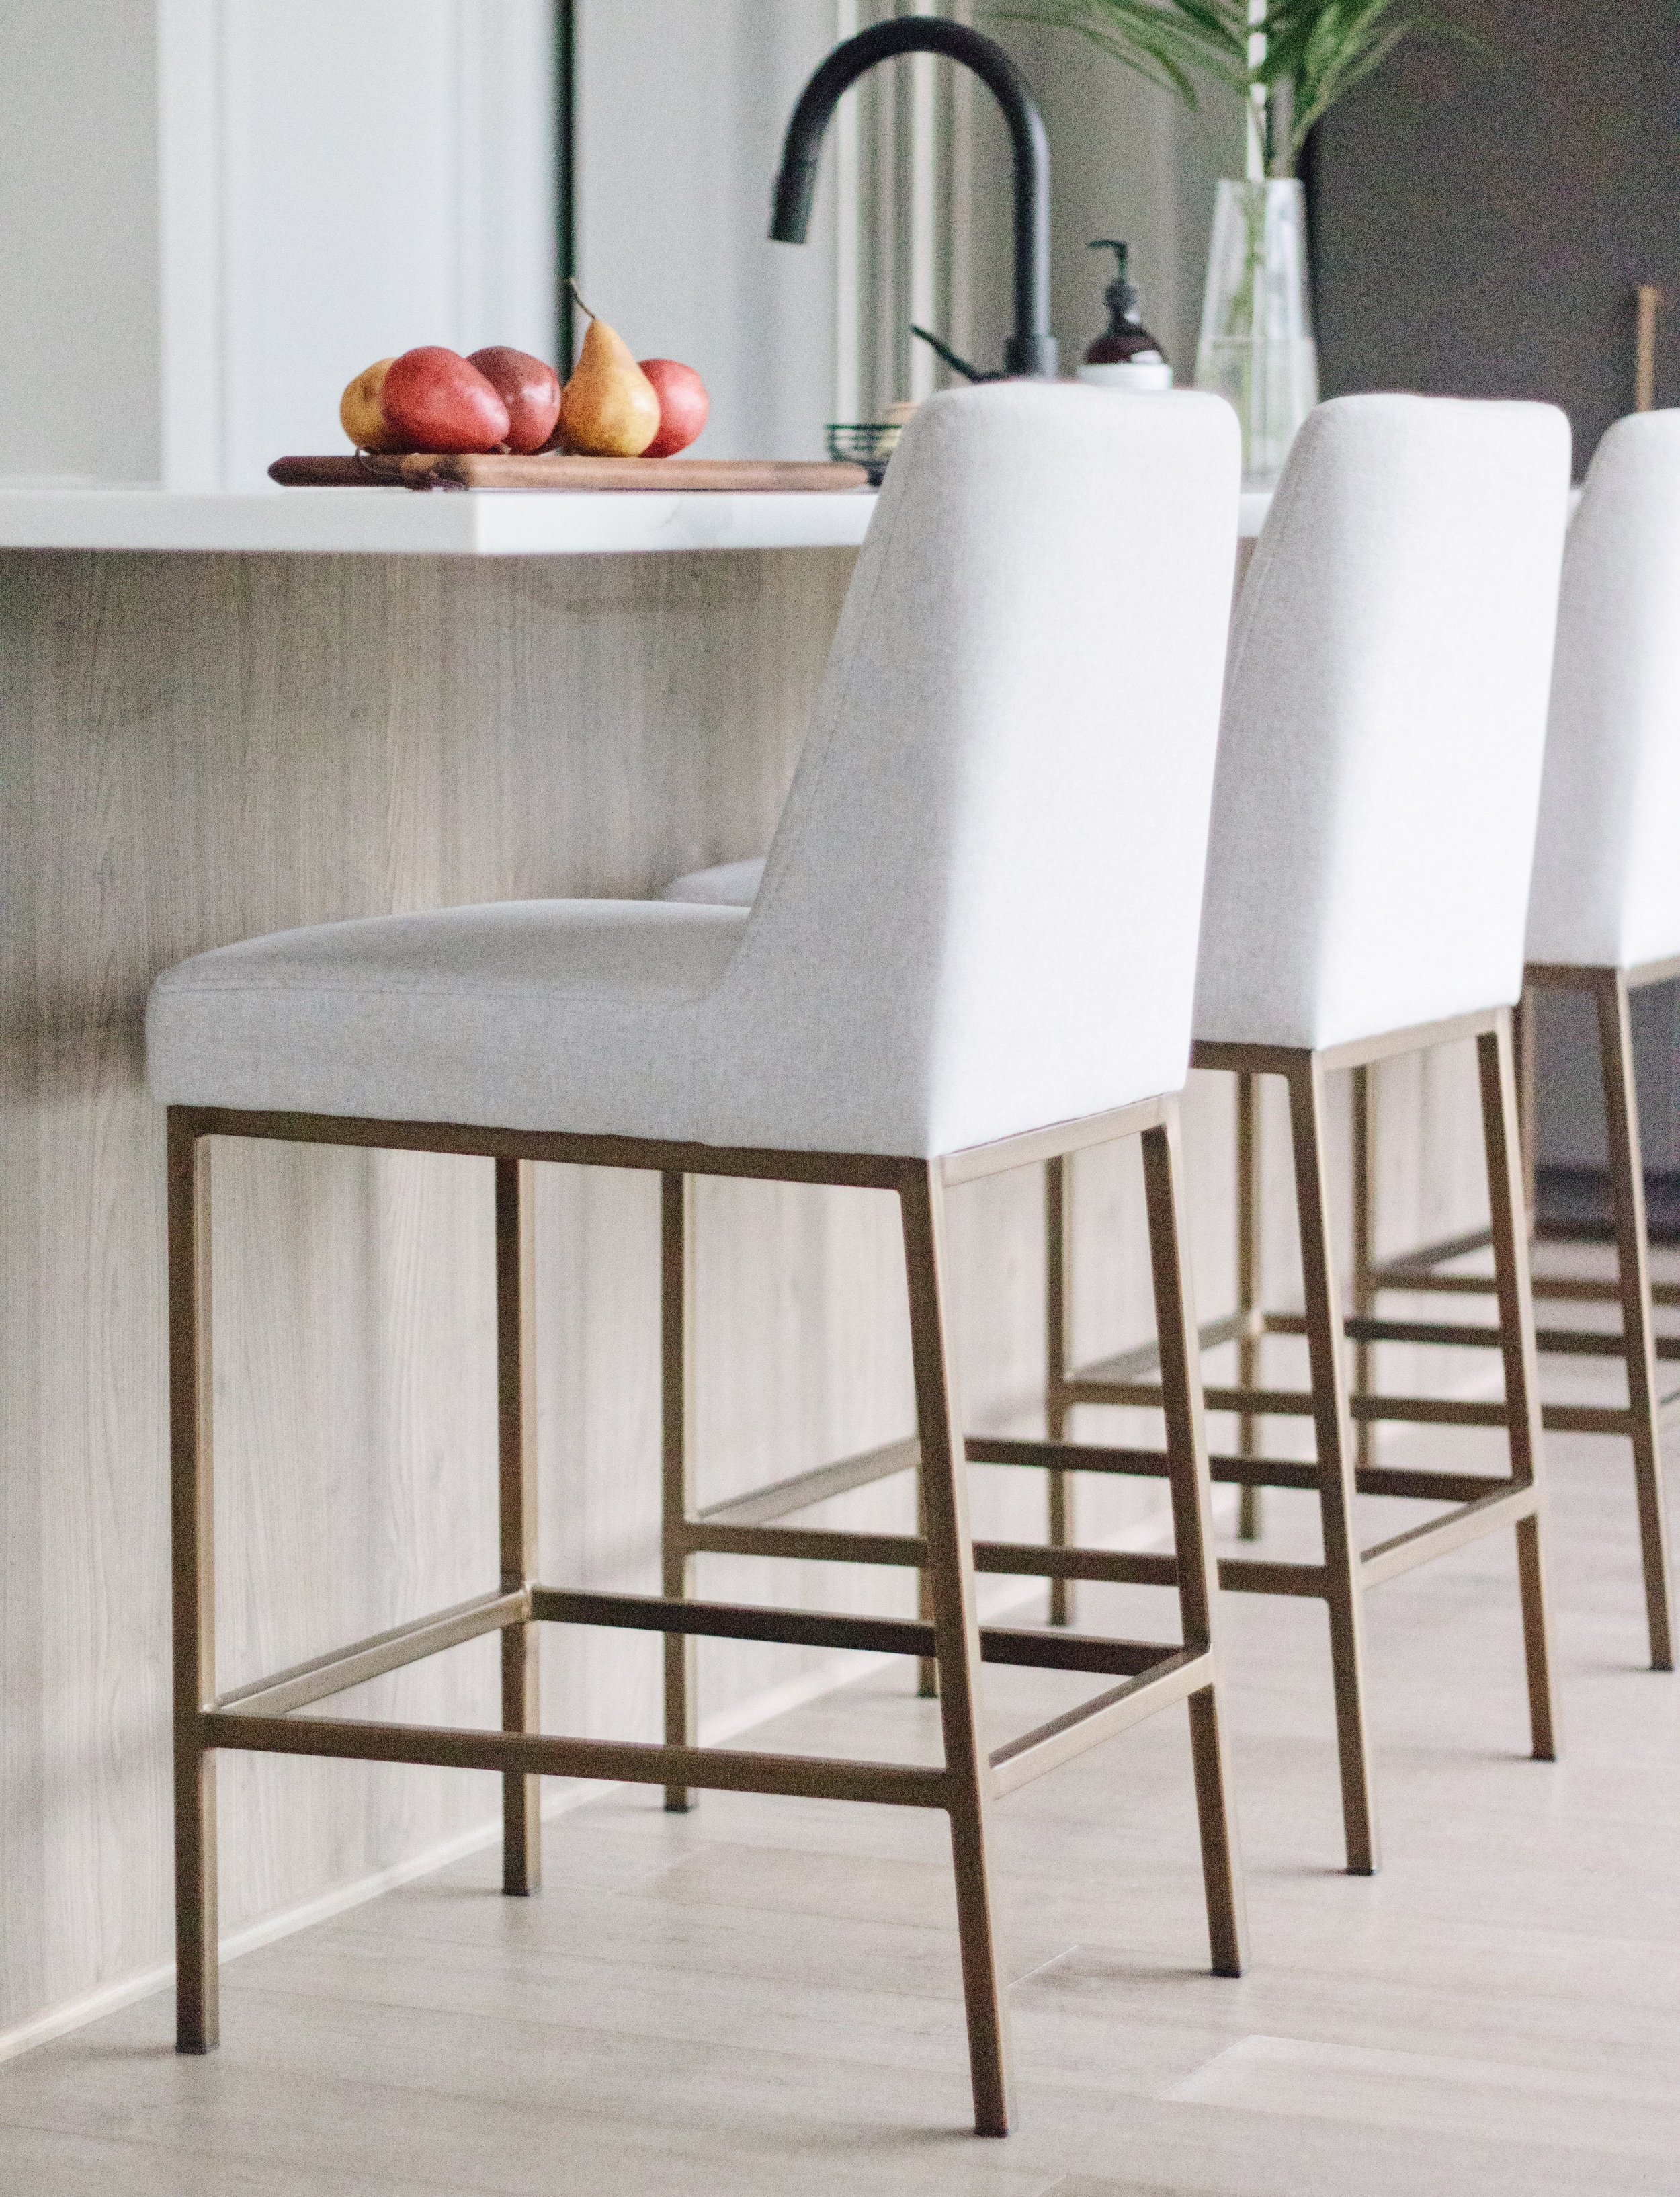 Modern but inviting counter stools sit pretty at Ottawa based interior design firm Leclair Decor's Cedarbreeze project.